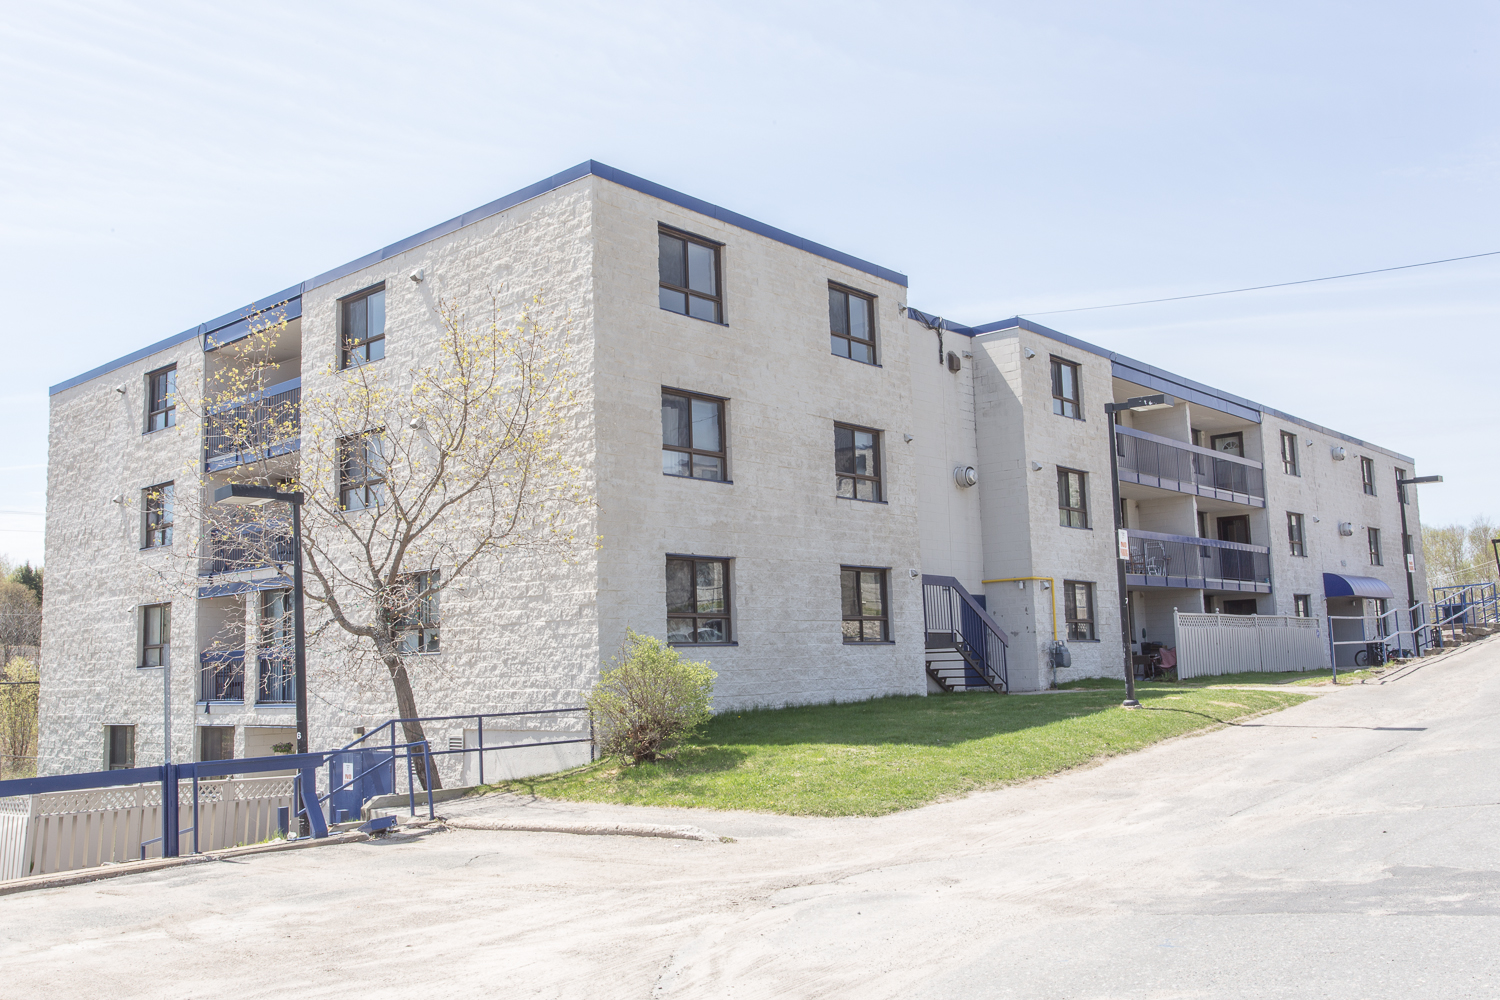 Windermere Apartments in Elliot Lake